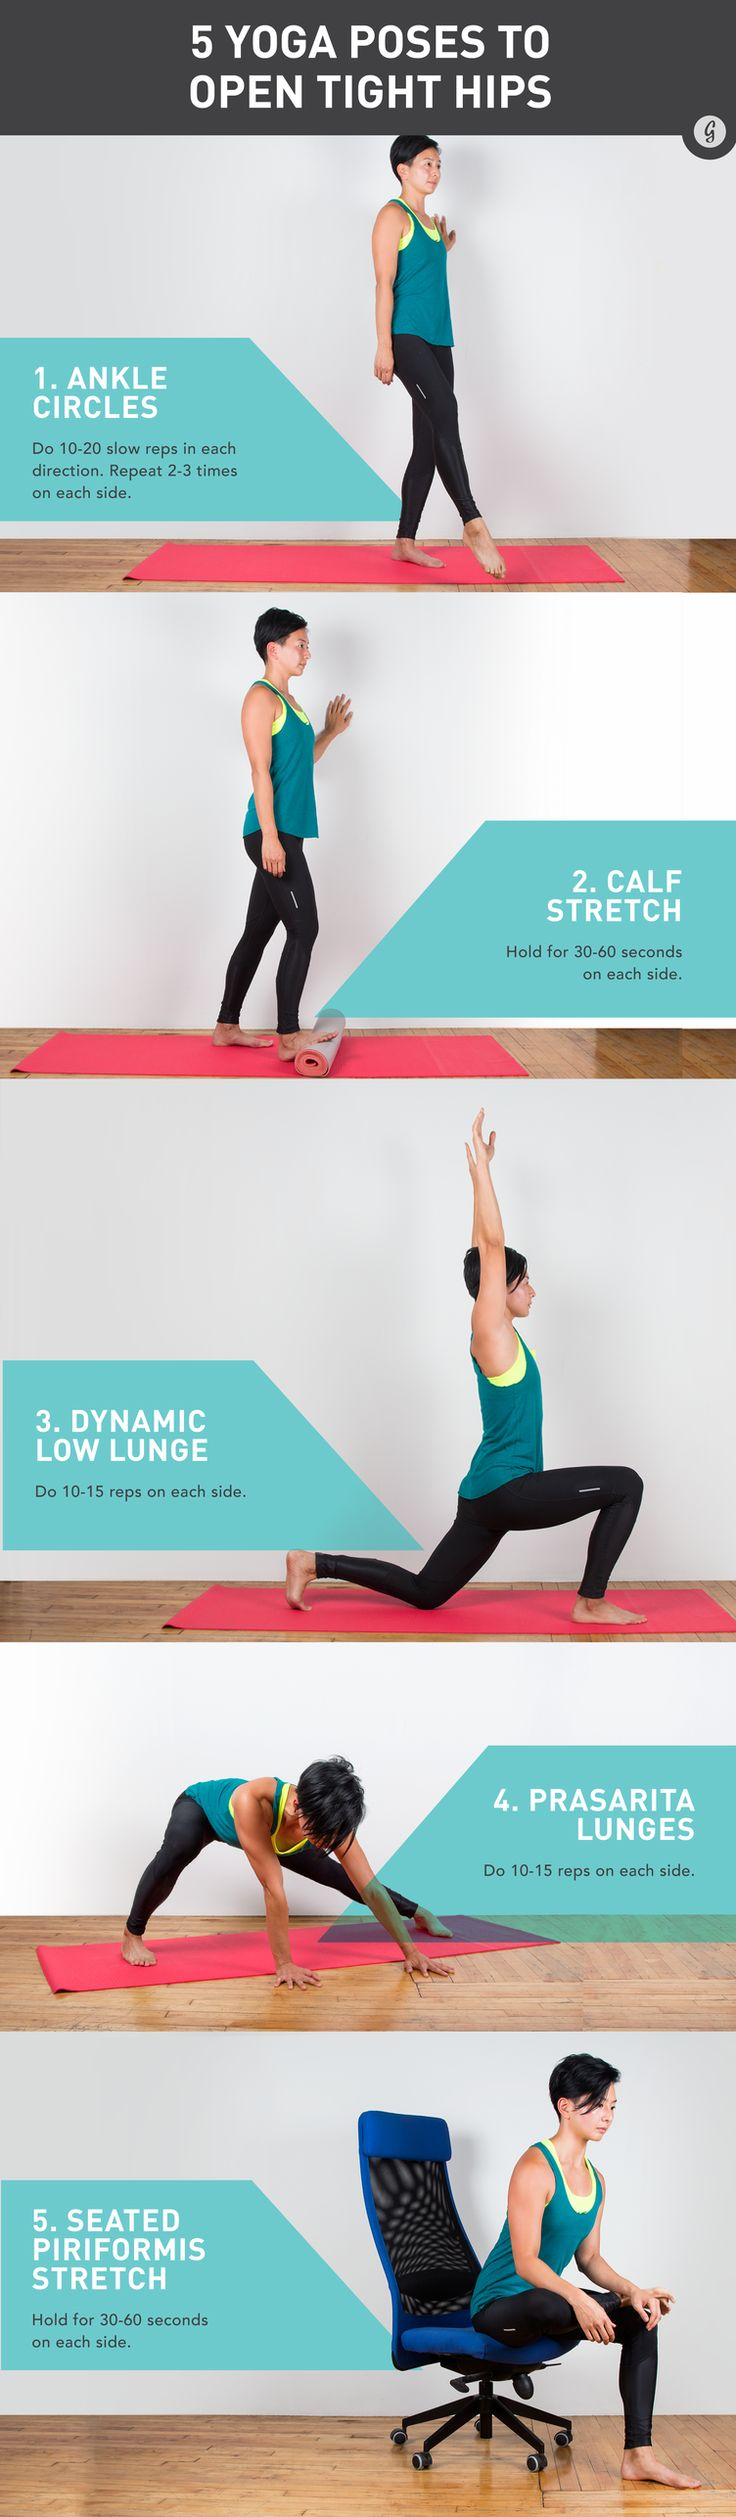 Whether your hips are tense from too much desk sitting or sore from workouts, this yoga sequence will leave your hips feeling loose and soothed. #yoga #stretches